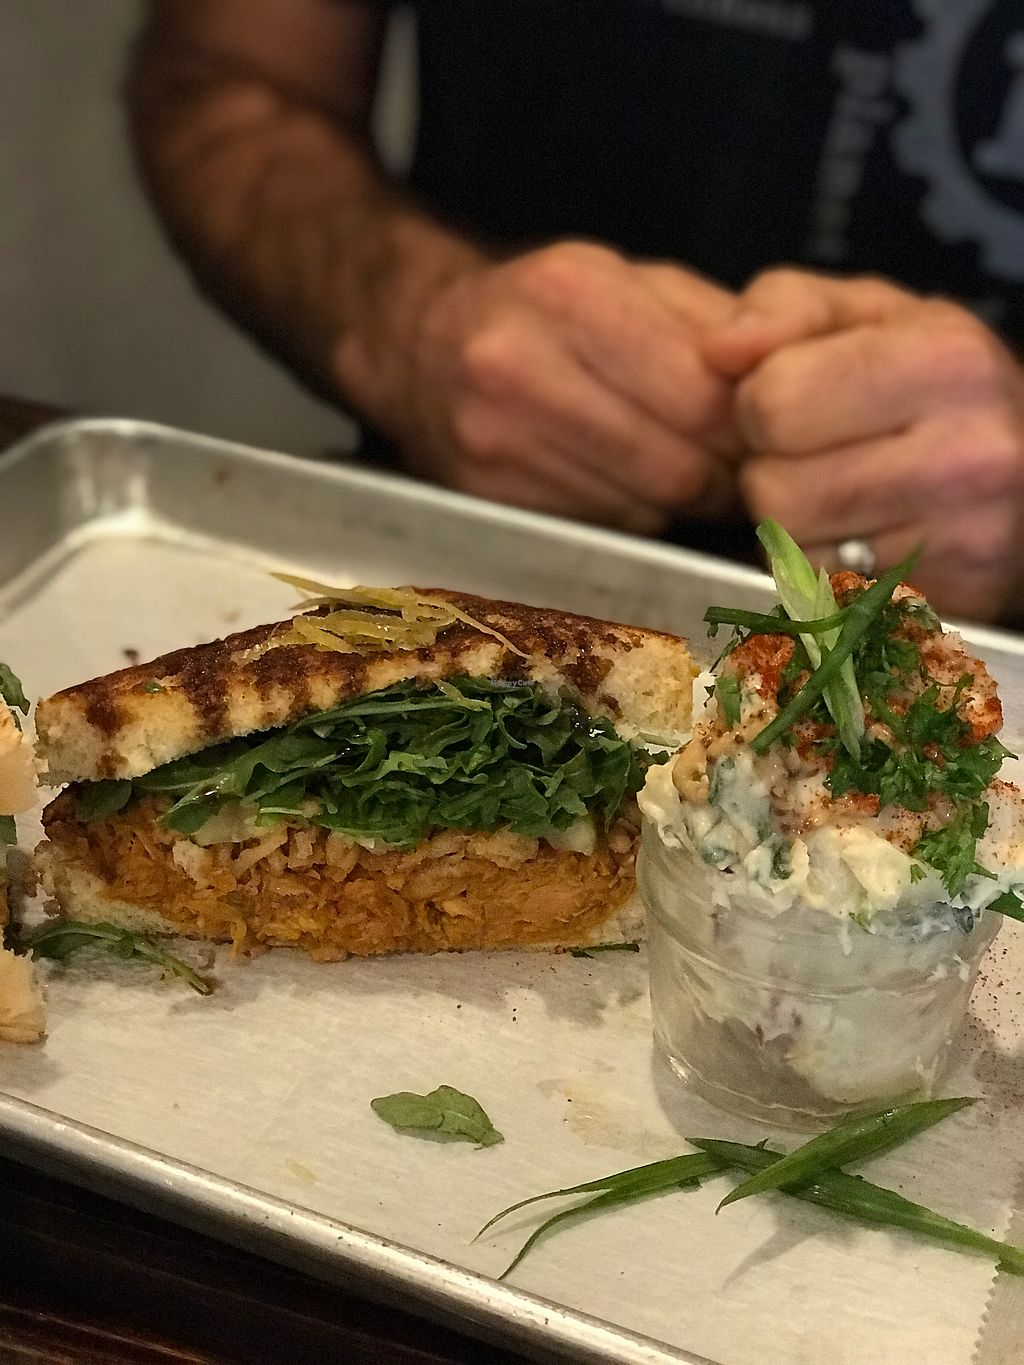 """Photo of Dixie Dharma - Market on South  by <a href=""""/members/profile/LouAnneLay"""">LouAnneLay</a> <br/>Pulled Jackfruit Sandwich with potato salad - amazing! <br/> October 29, 2017  - <a href='/contact/abuse/image/52602/319662'>Report</a>"""